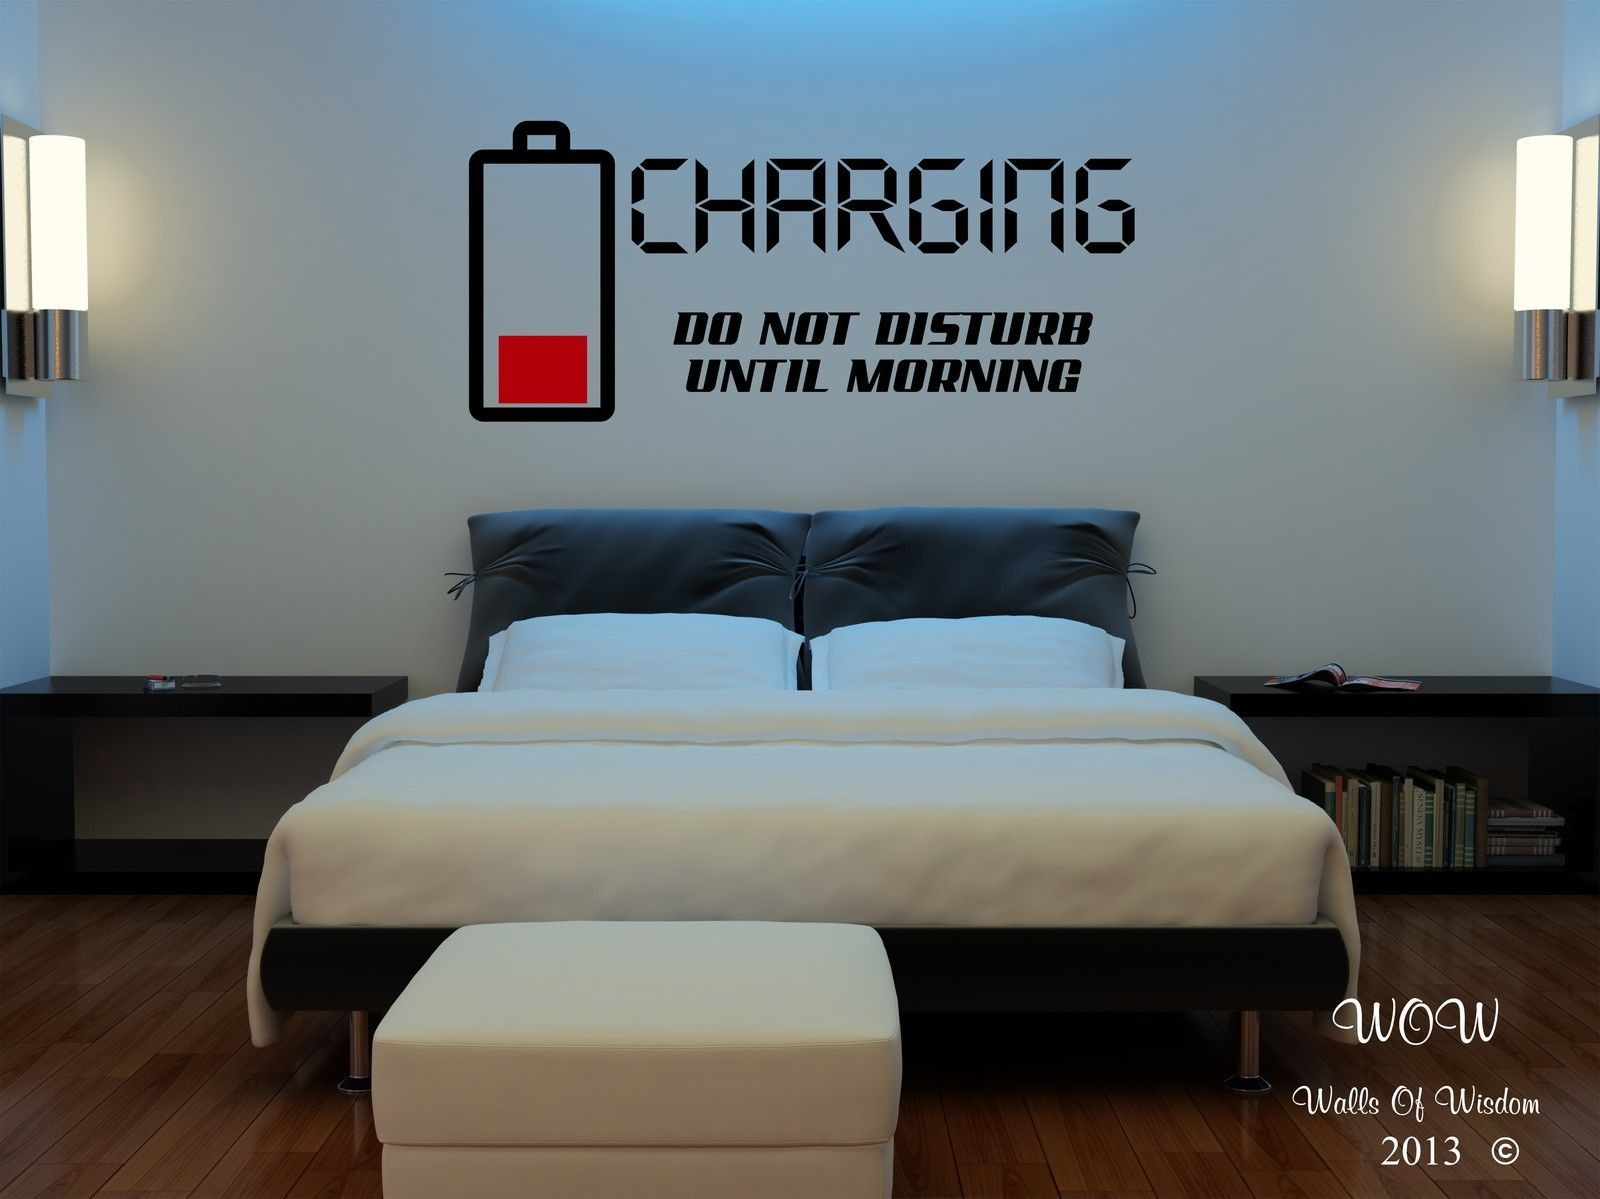 Children Teenager Adult Bedroom Wall Sticker Wall Art Charging Do not  disturb   eBay. Children Teenager Adult Bedroom Wall Sticker Wall Art Charging Do